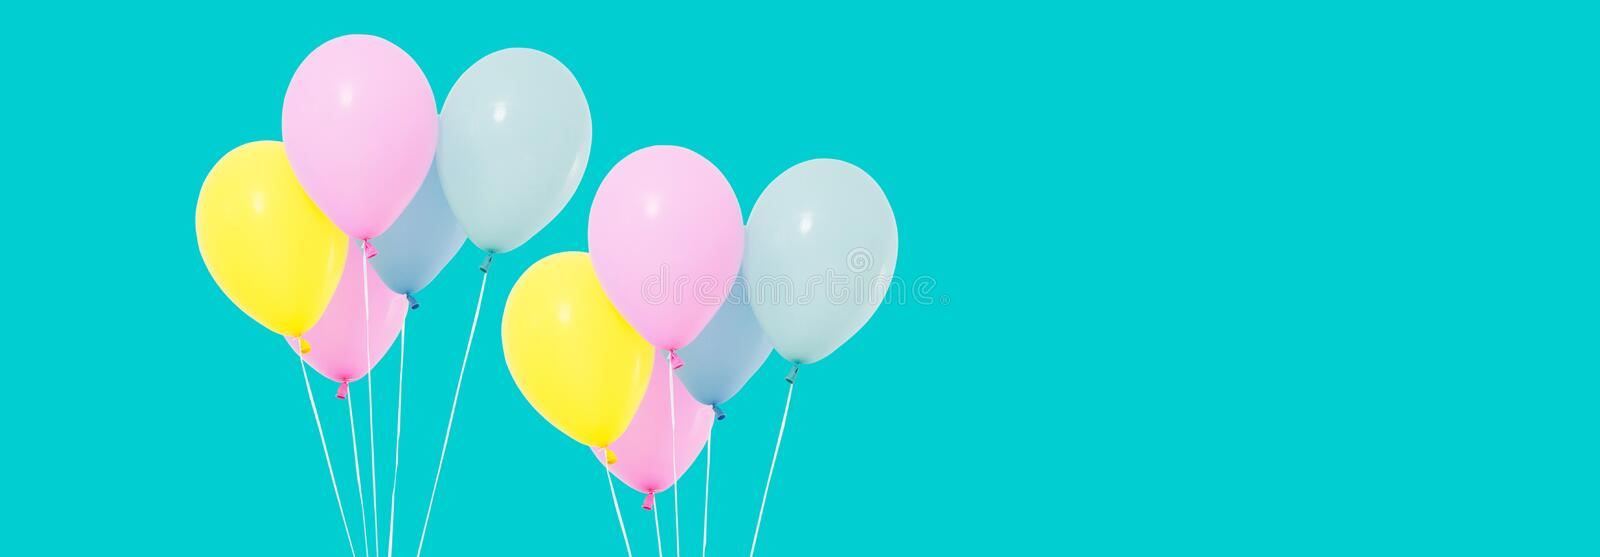 Bunch of colorful balloons on background - copy space royalty free stock photography